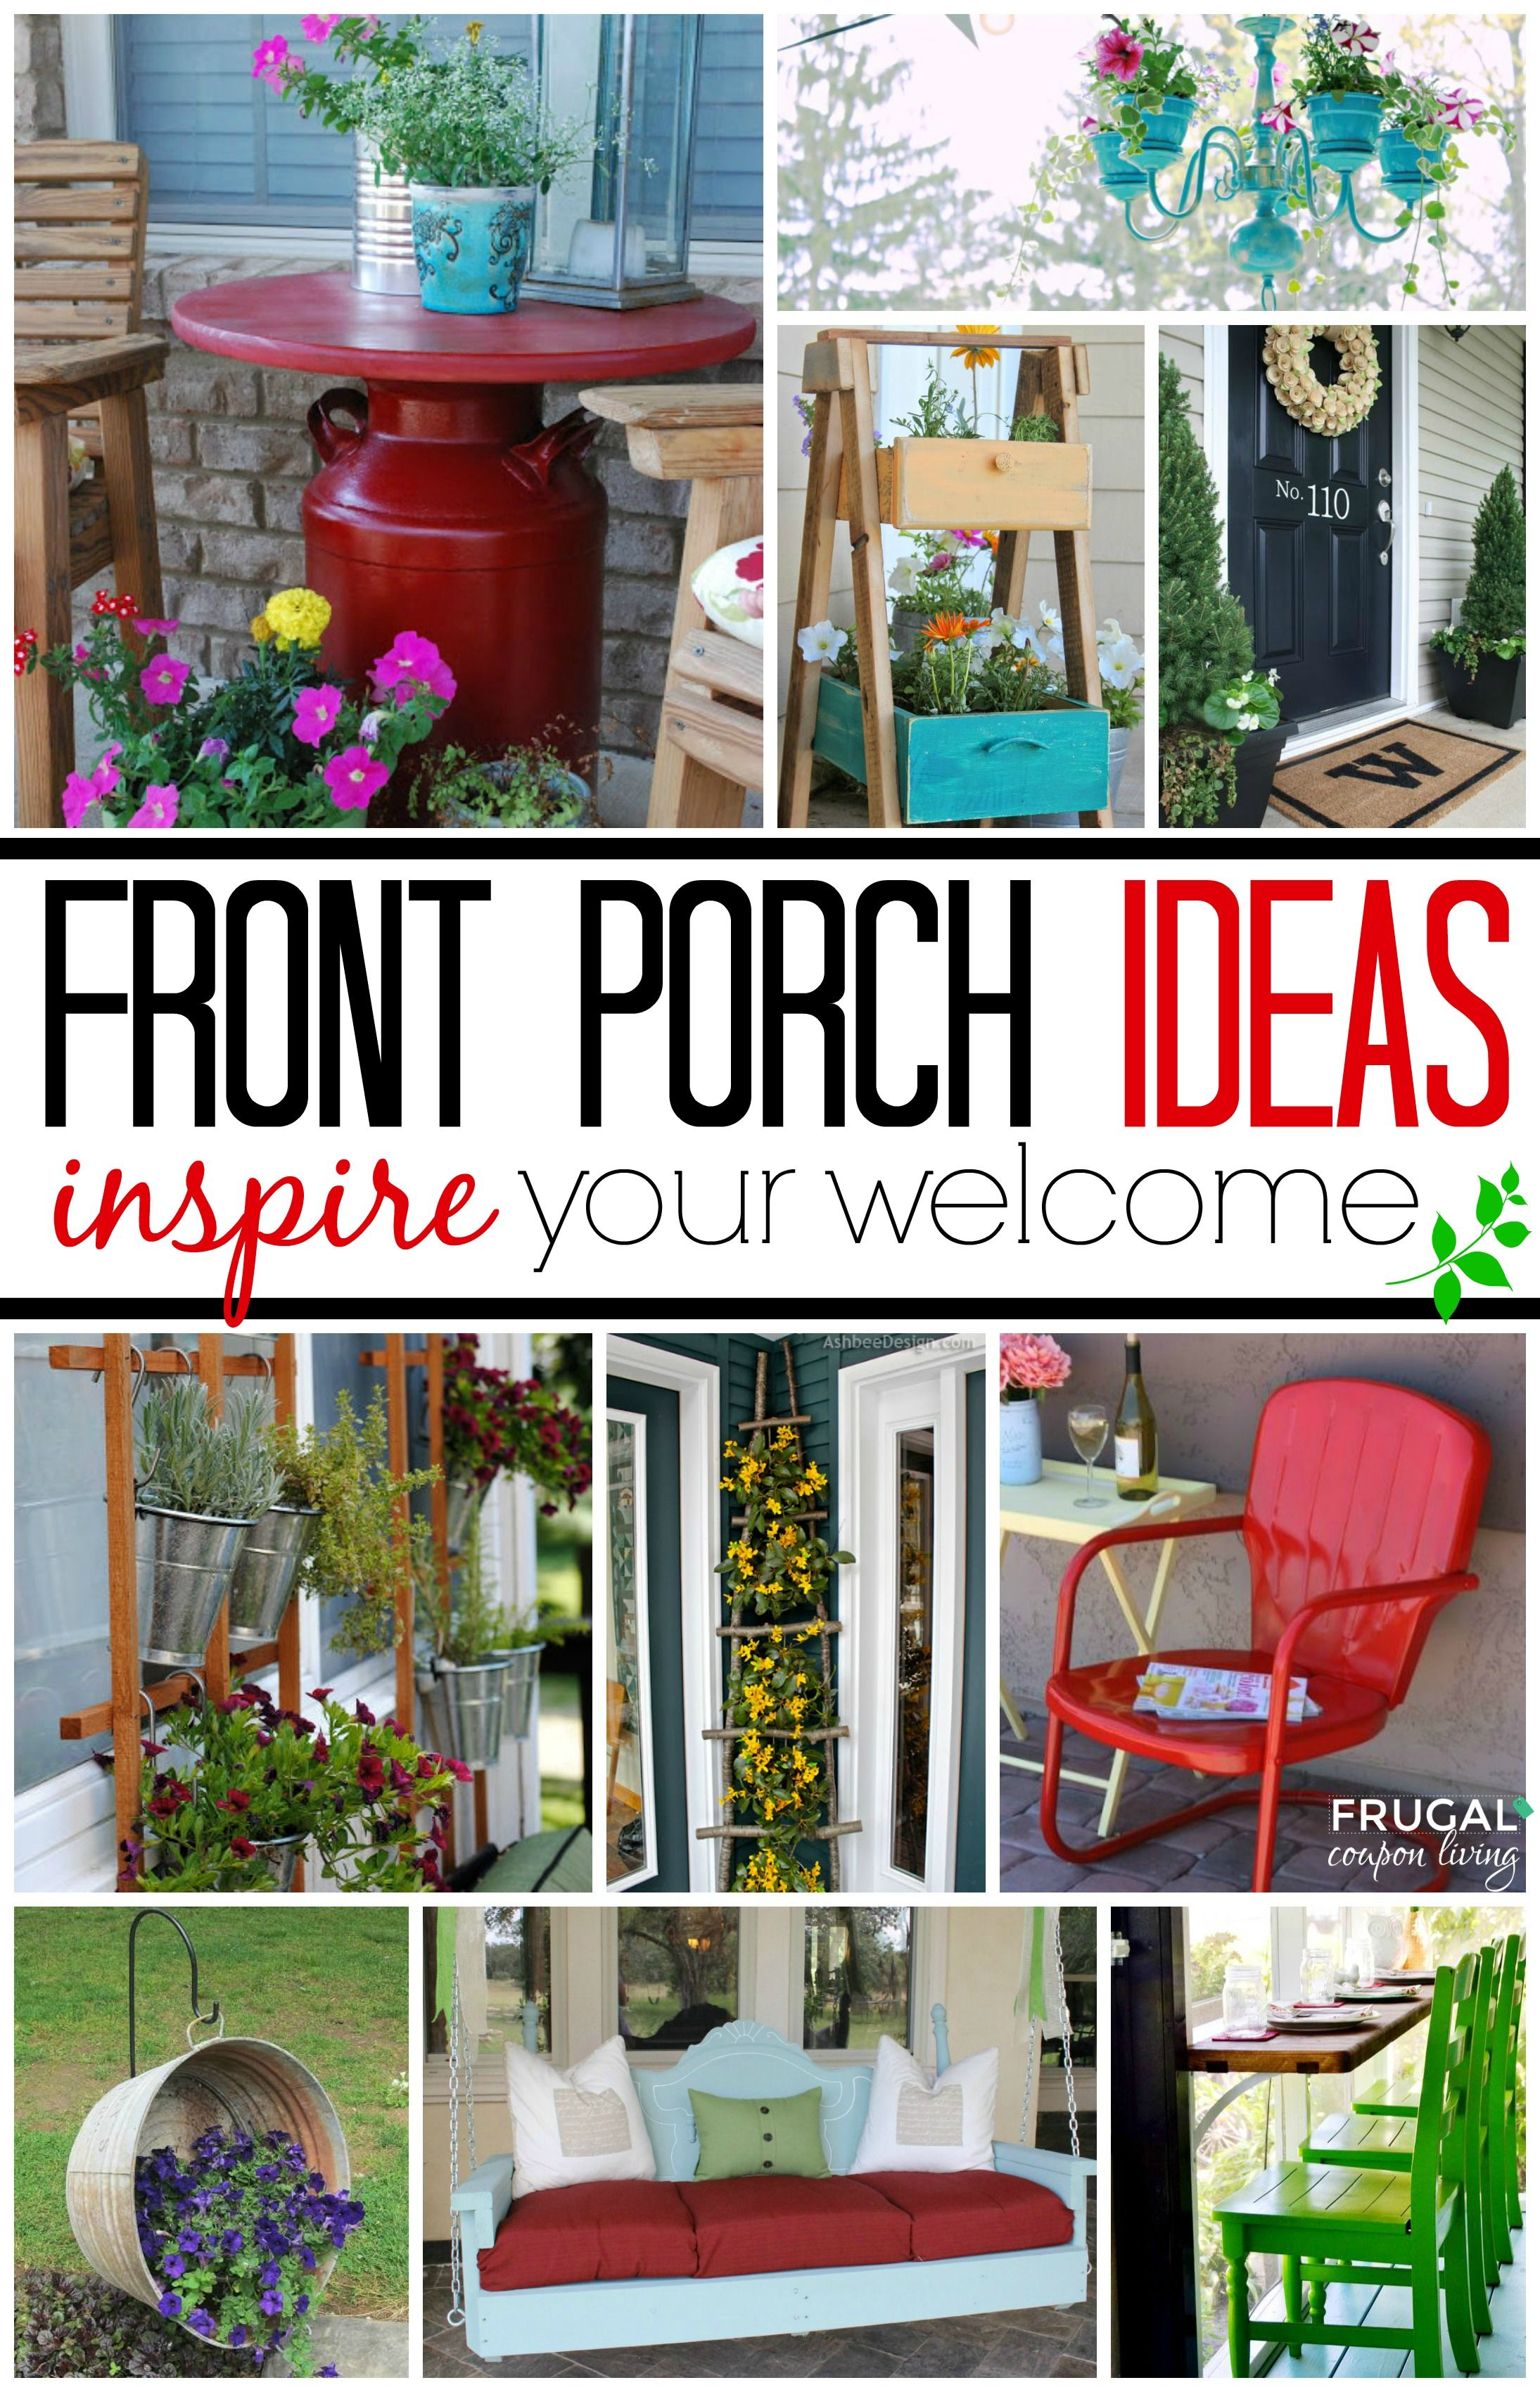 Front Porch Ideas And Landscape For Your Home Diy Improvement To Update Curb Eal Most Of These Are Budget Friendly Easy Do